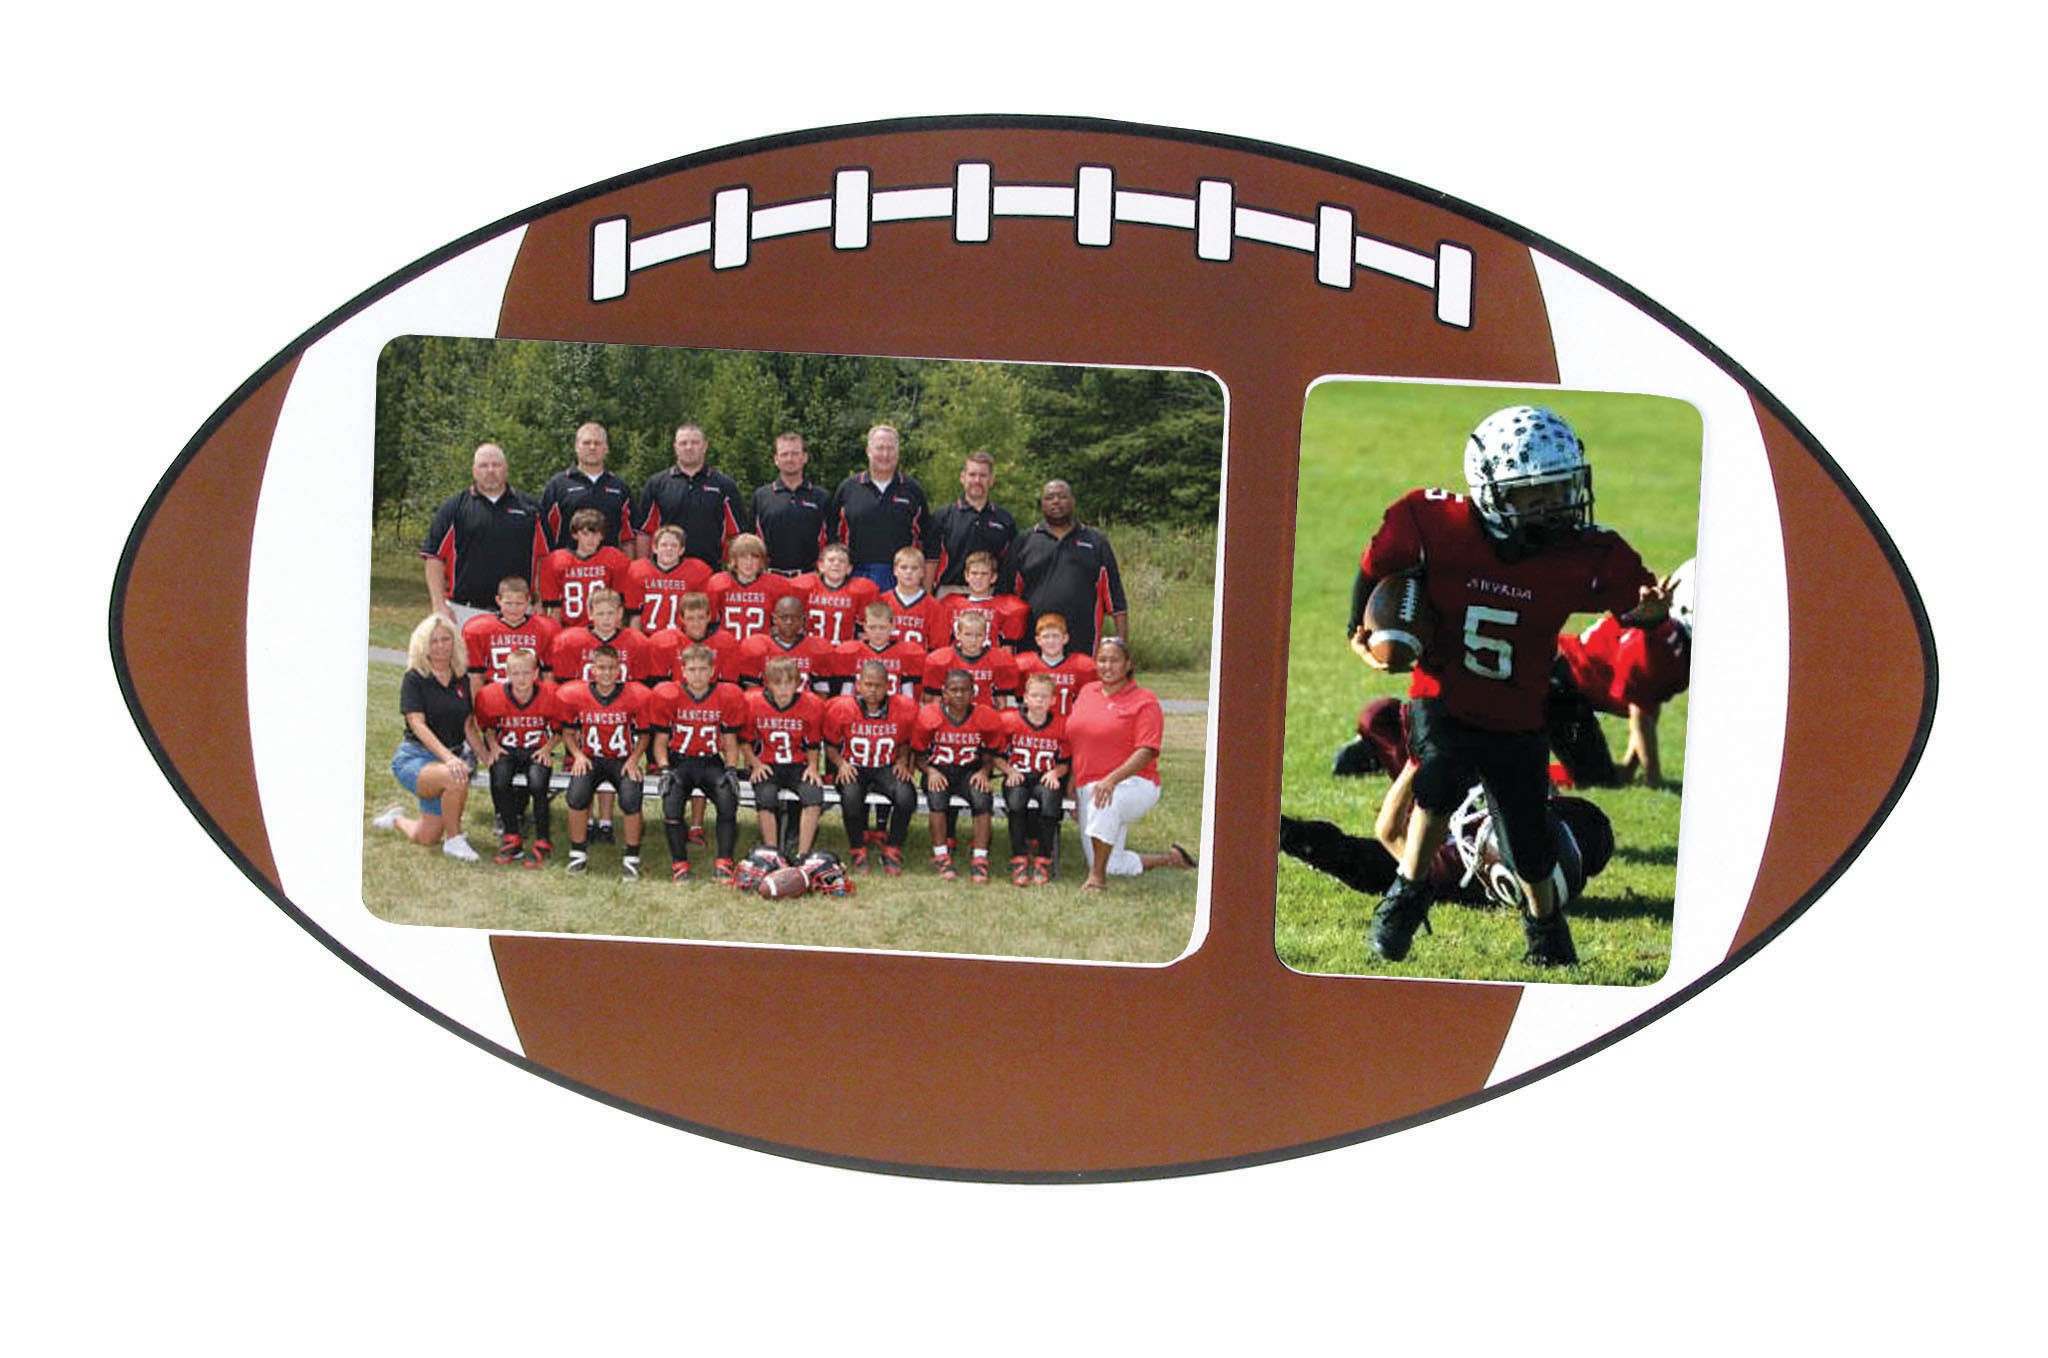 Football Sports Wood Picture Frame - Holds 2 Photos